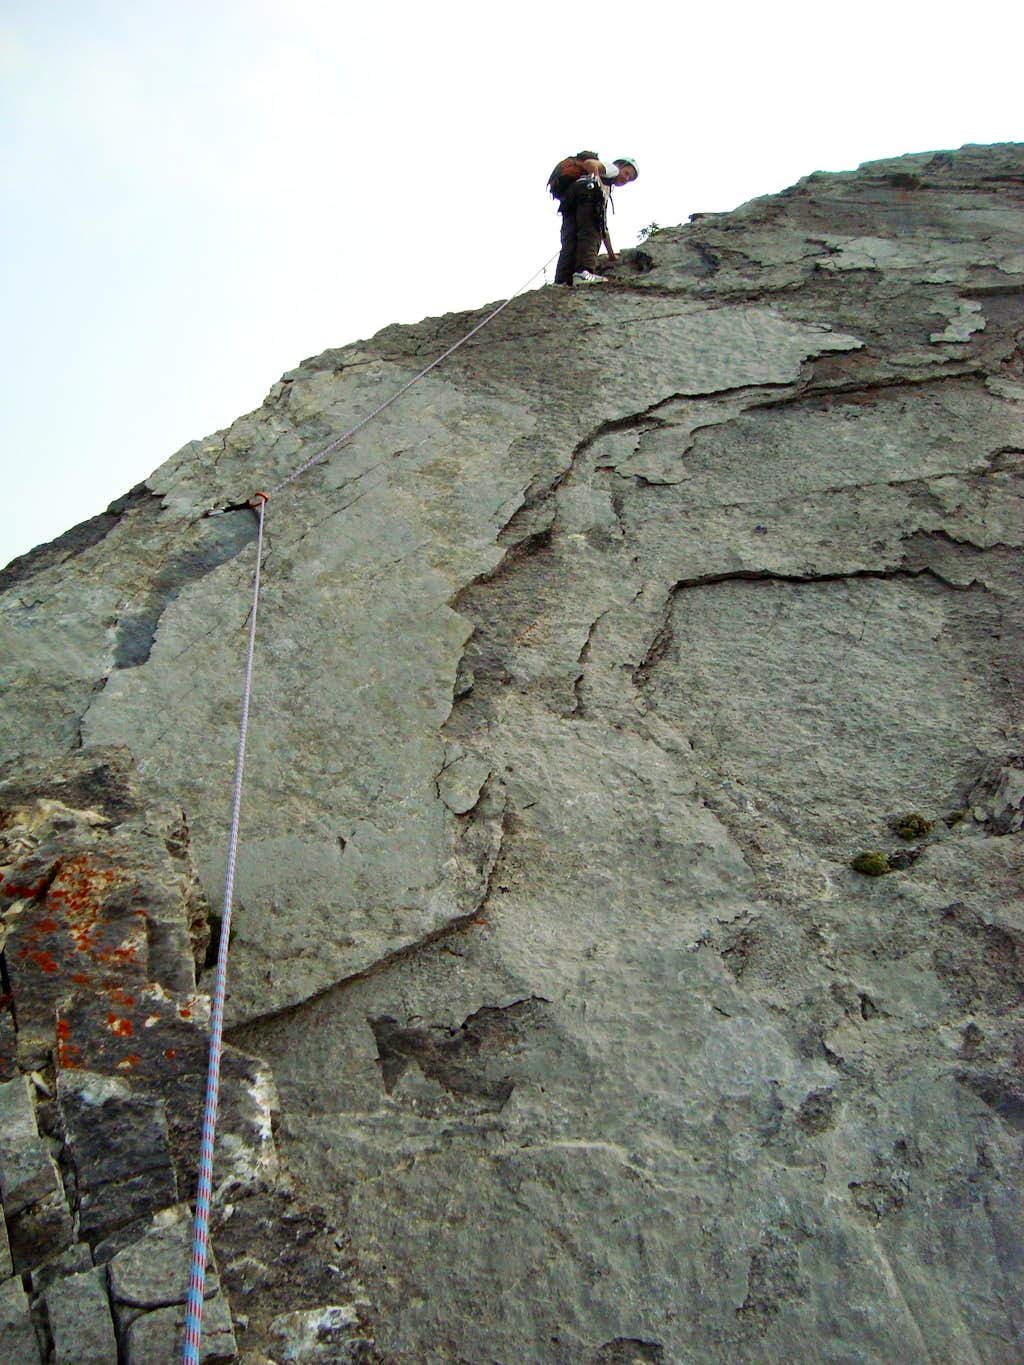 Me on the first difficult slab